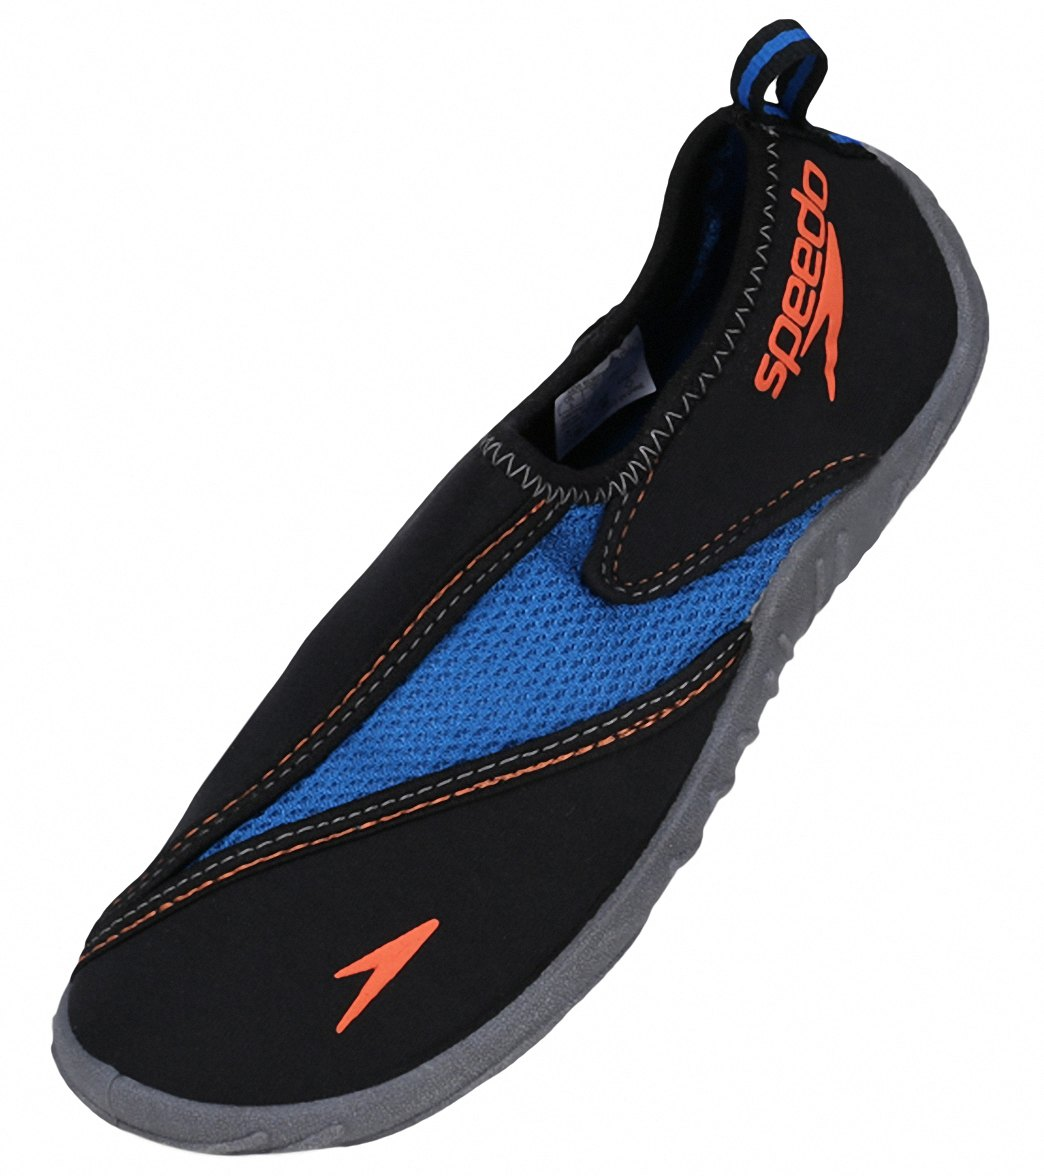 Speedo Kids' Surfwalker Pro Water Shoes at SwimOutlet.com